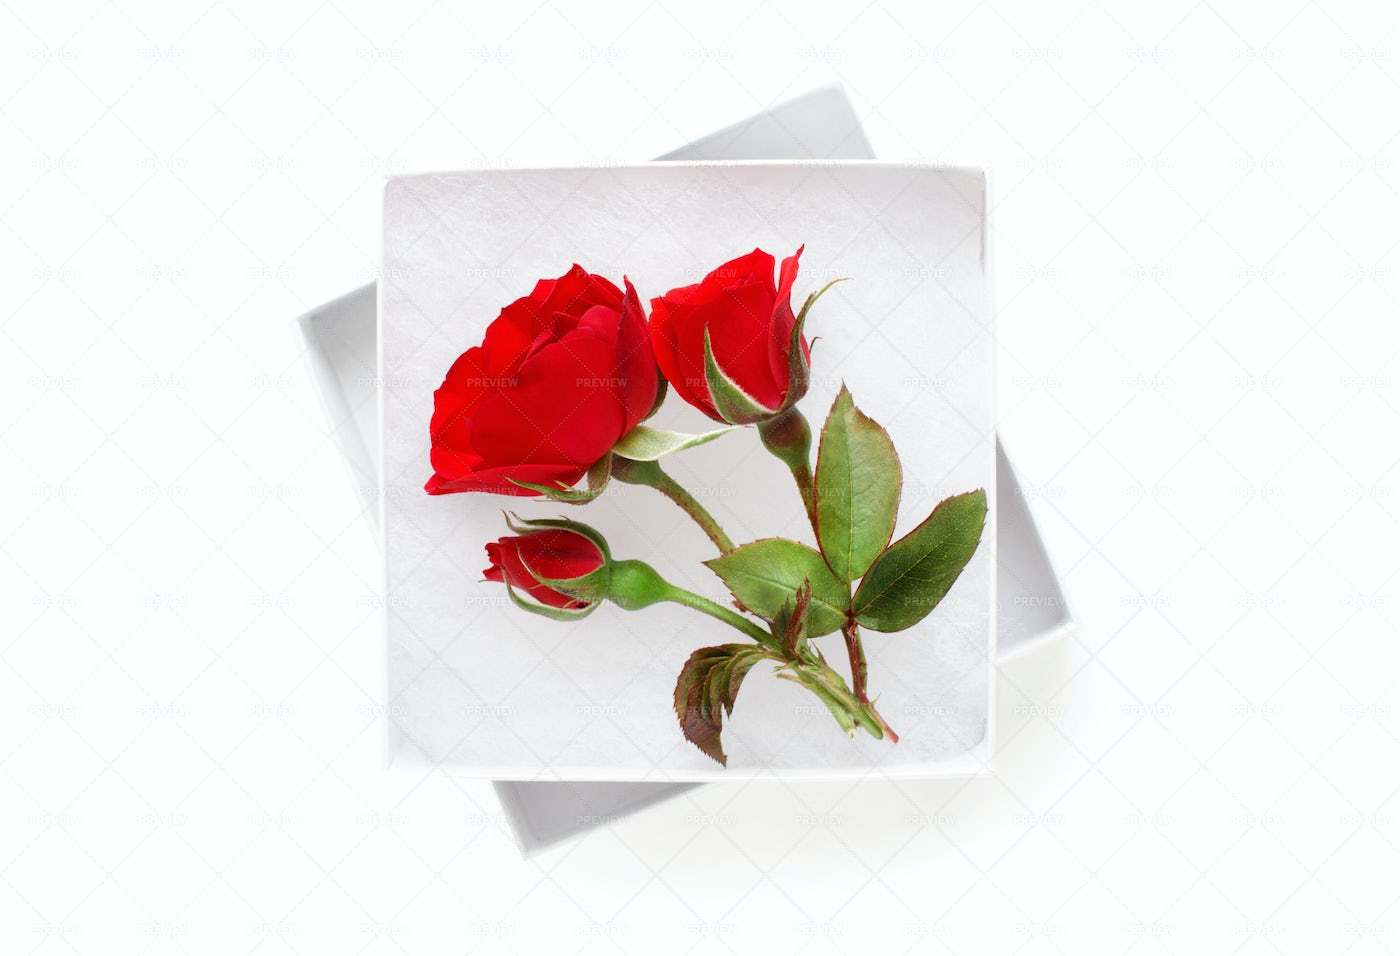 Roses In A White Gift Box: Stock Photos